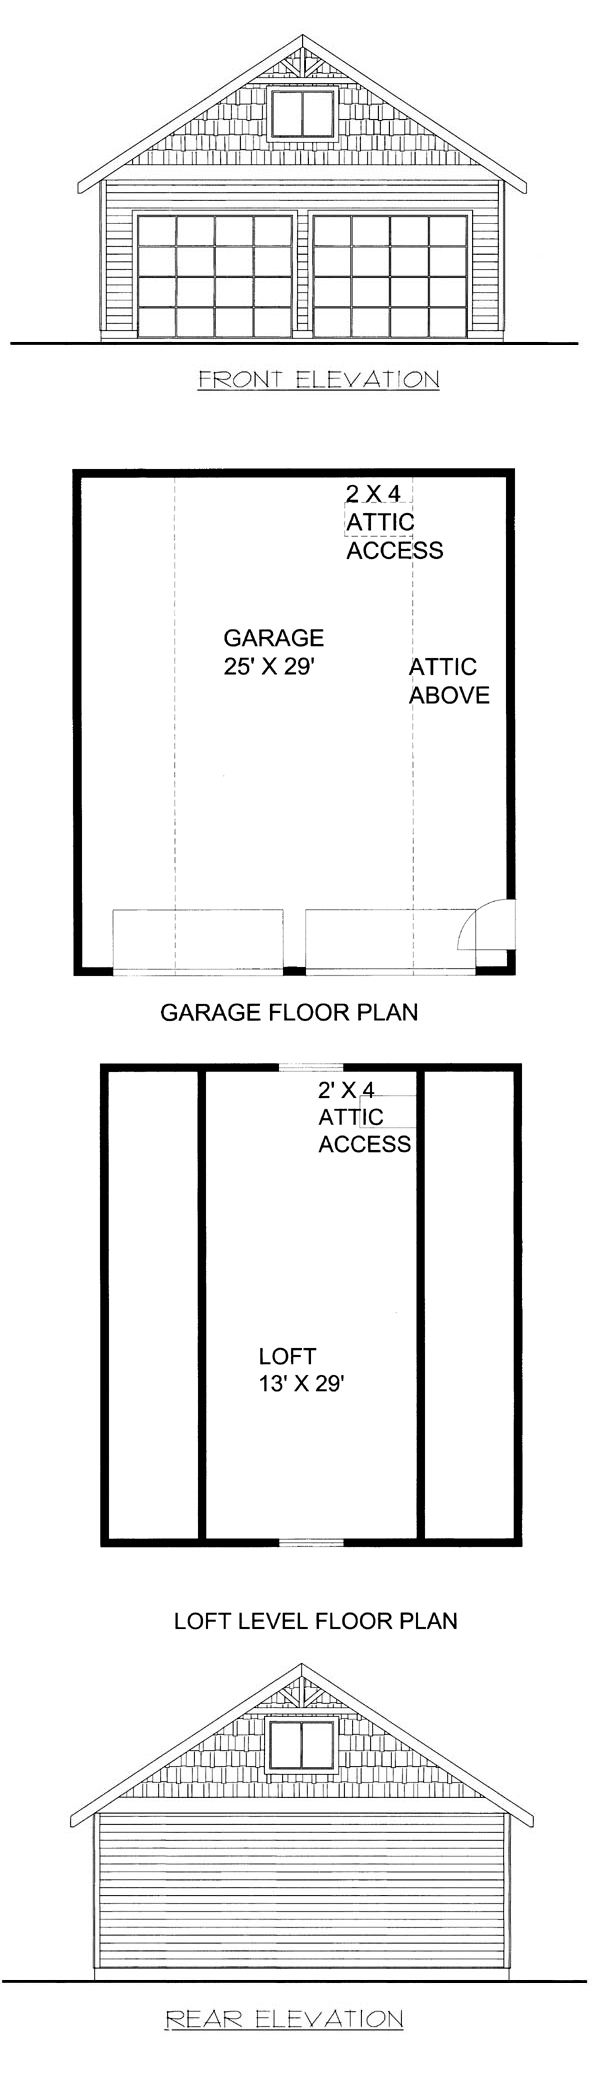 2 car garage plans with loft -  2car Garage Plan 85807 Measures 26 Feet By 30 Feet With 780 Square